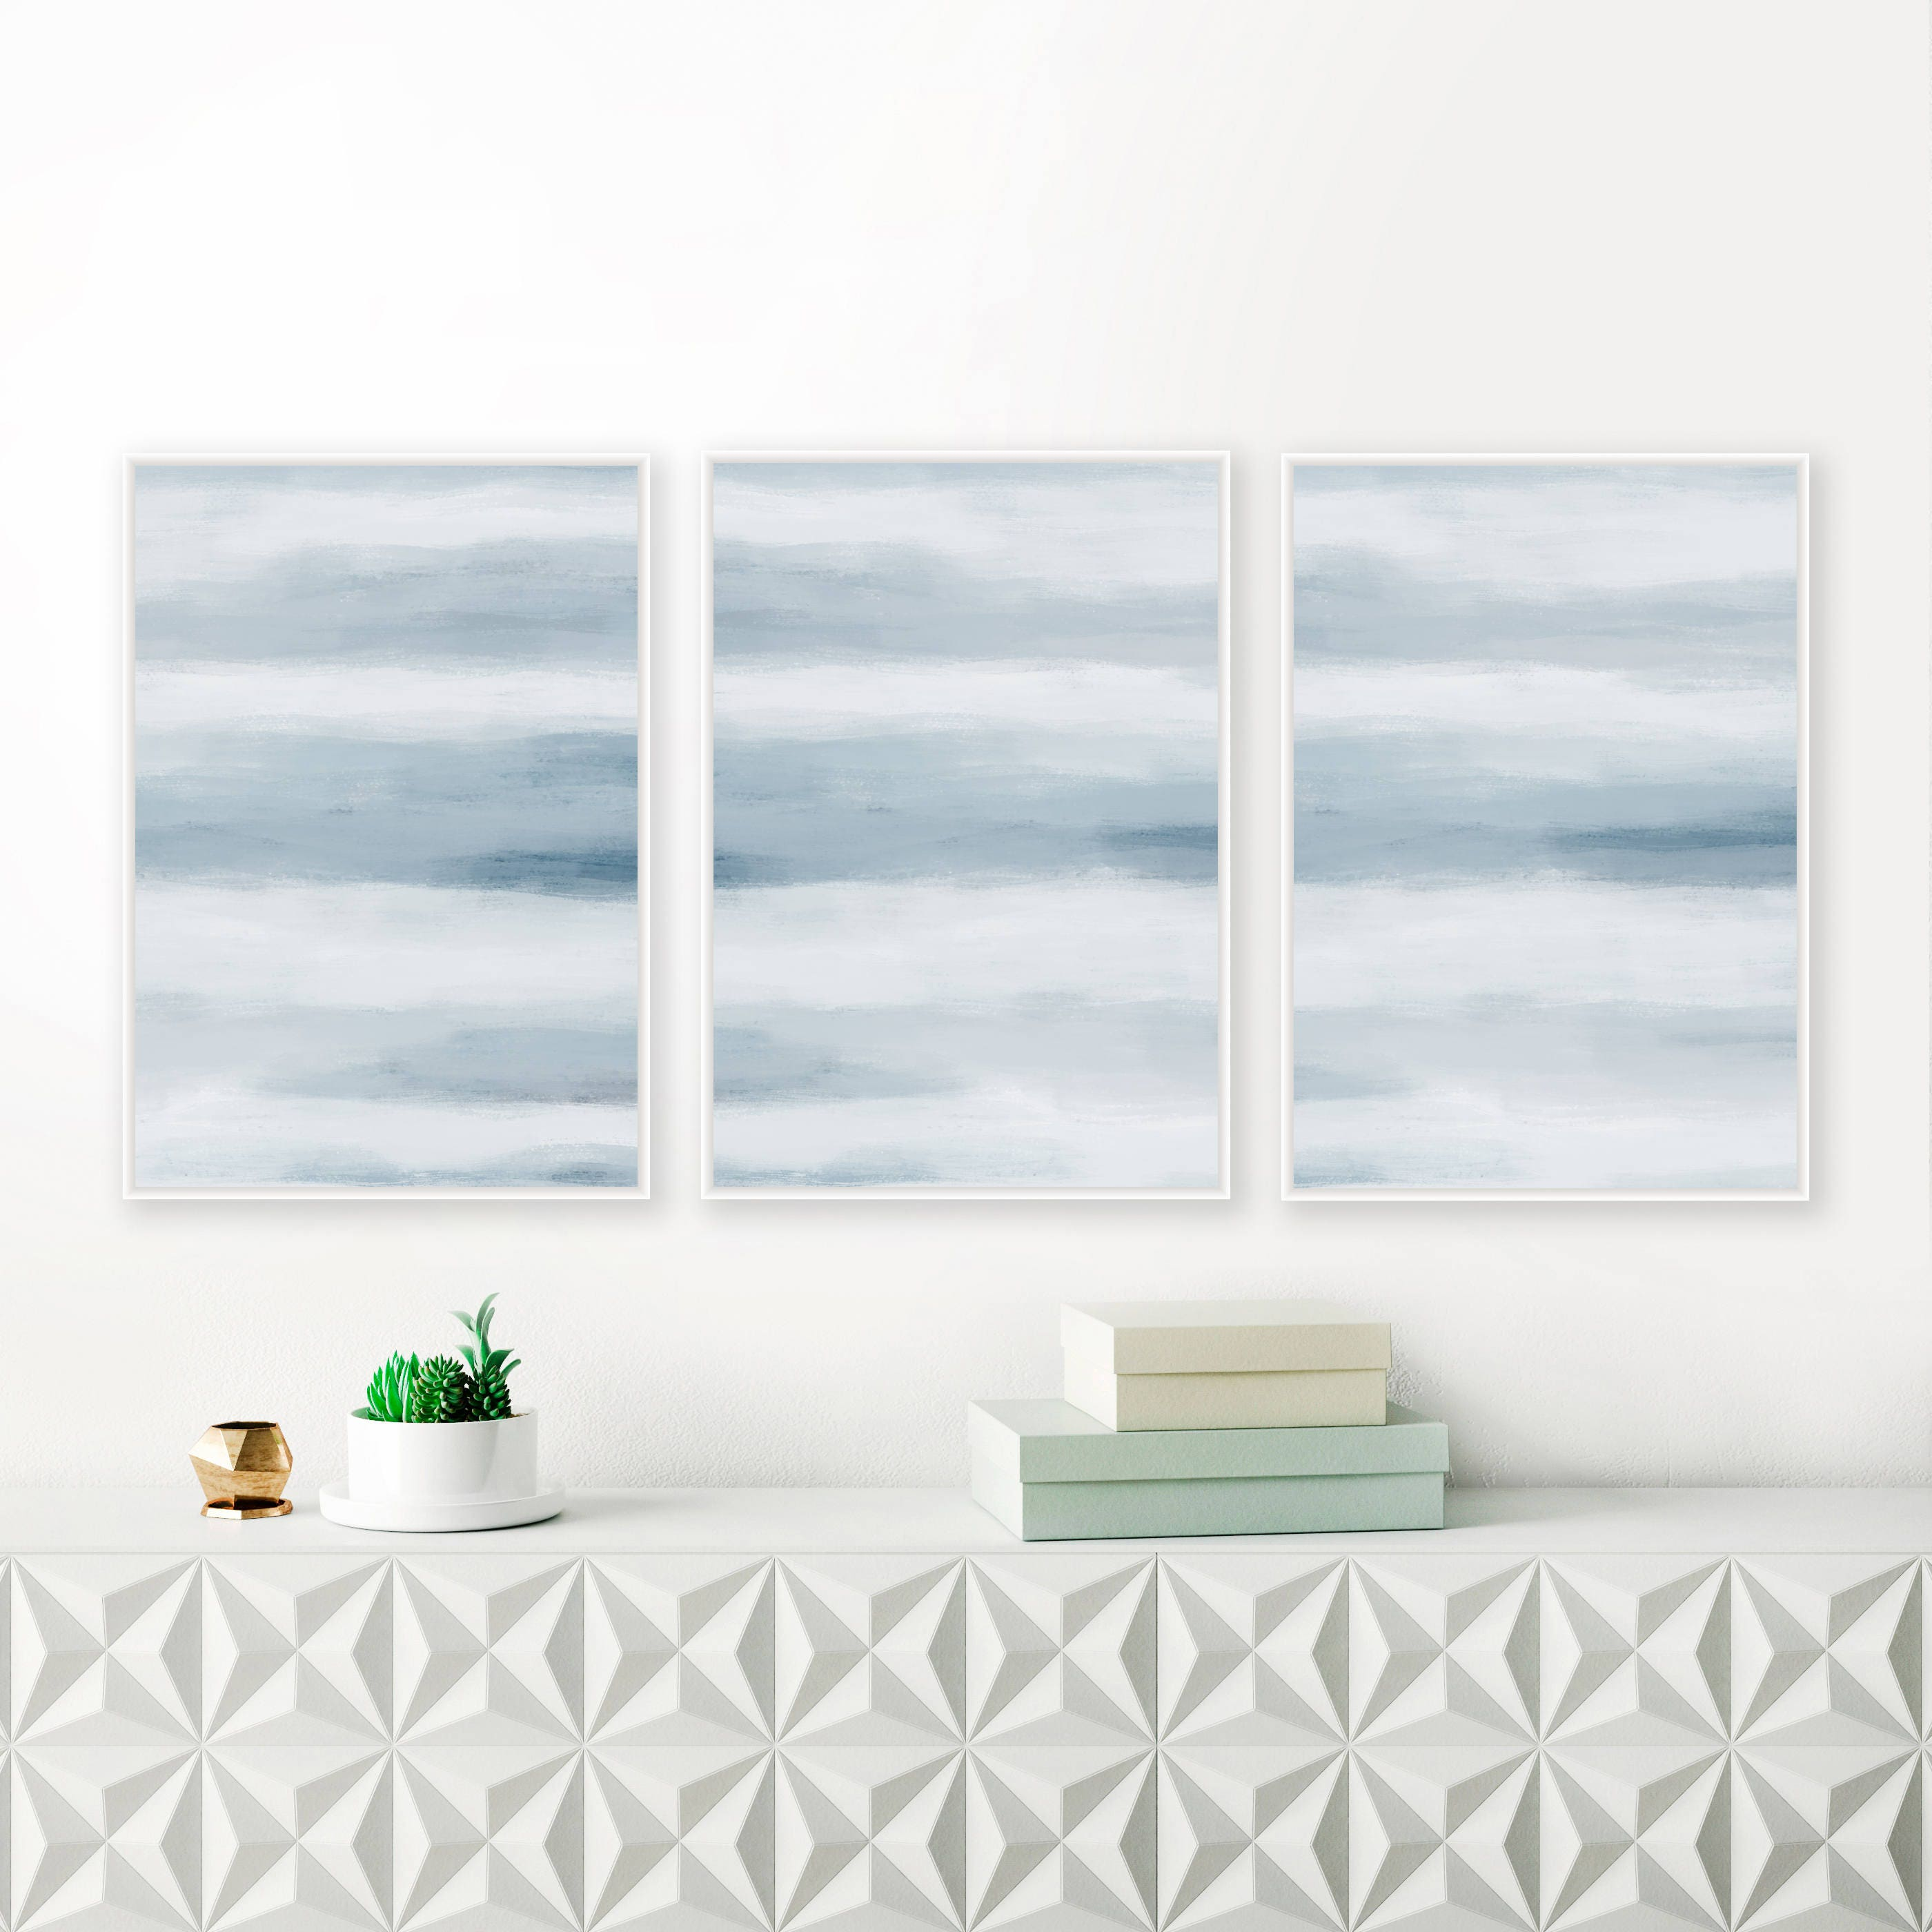 Wall decals choose an option 8x12 in 16x24 in 24x36 in - A Set Of 3 Blue Abstract Prints 24x36 Art Prints Blue Nursery Paintings Printable Living Room Art Extra Large Wall Art